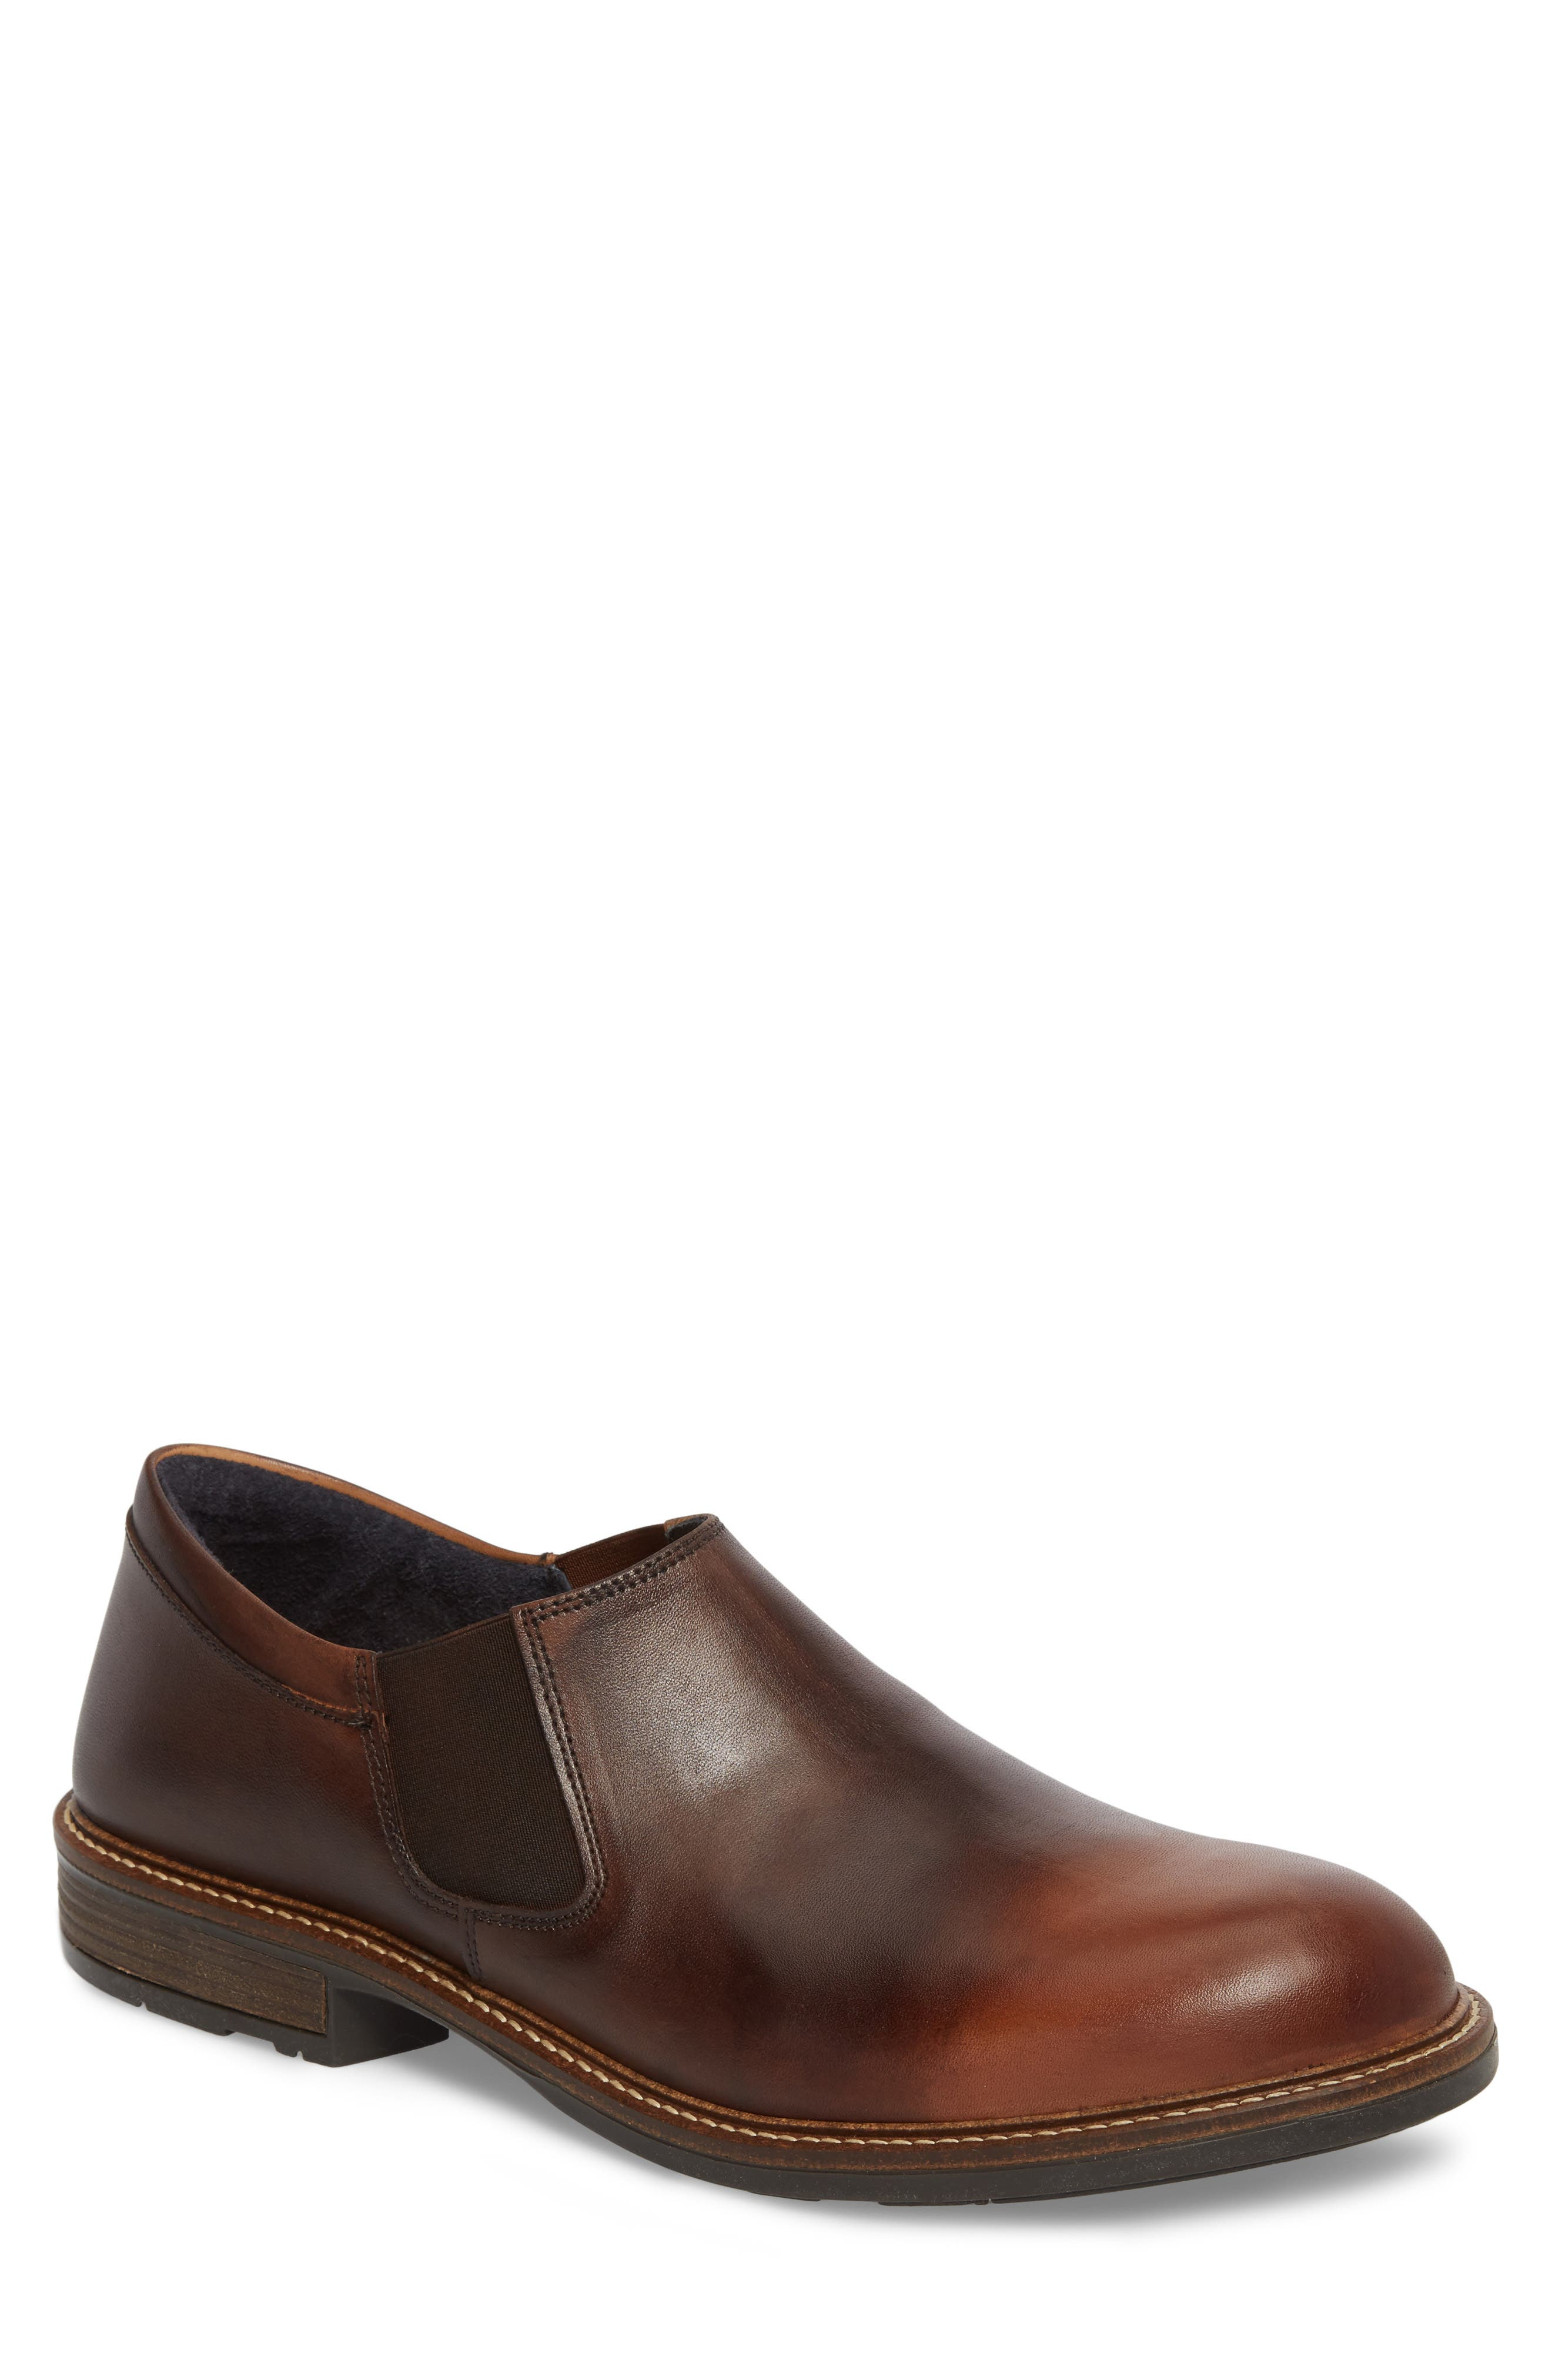 Director Venetian Loafer,                         Main,                         color, BROWN GRADIENT LEATHER